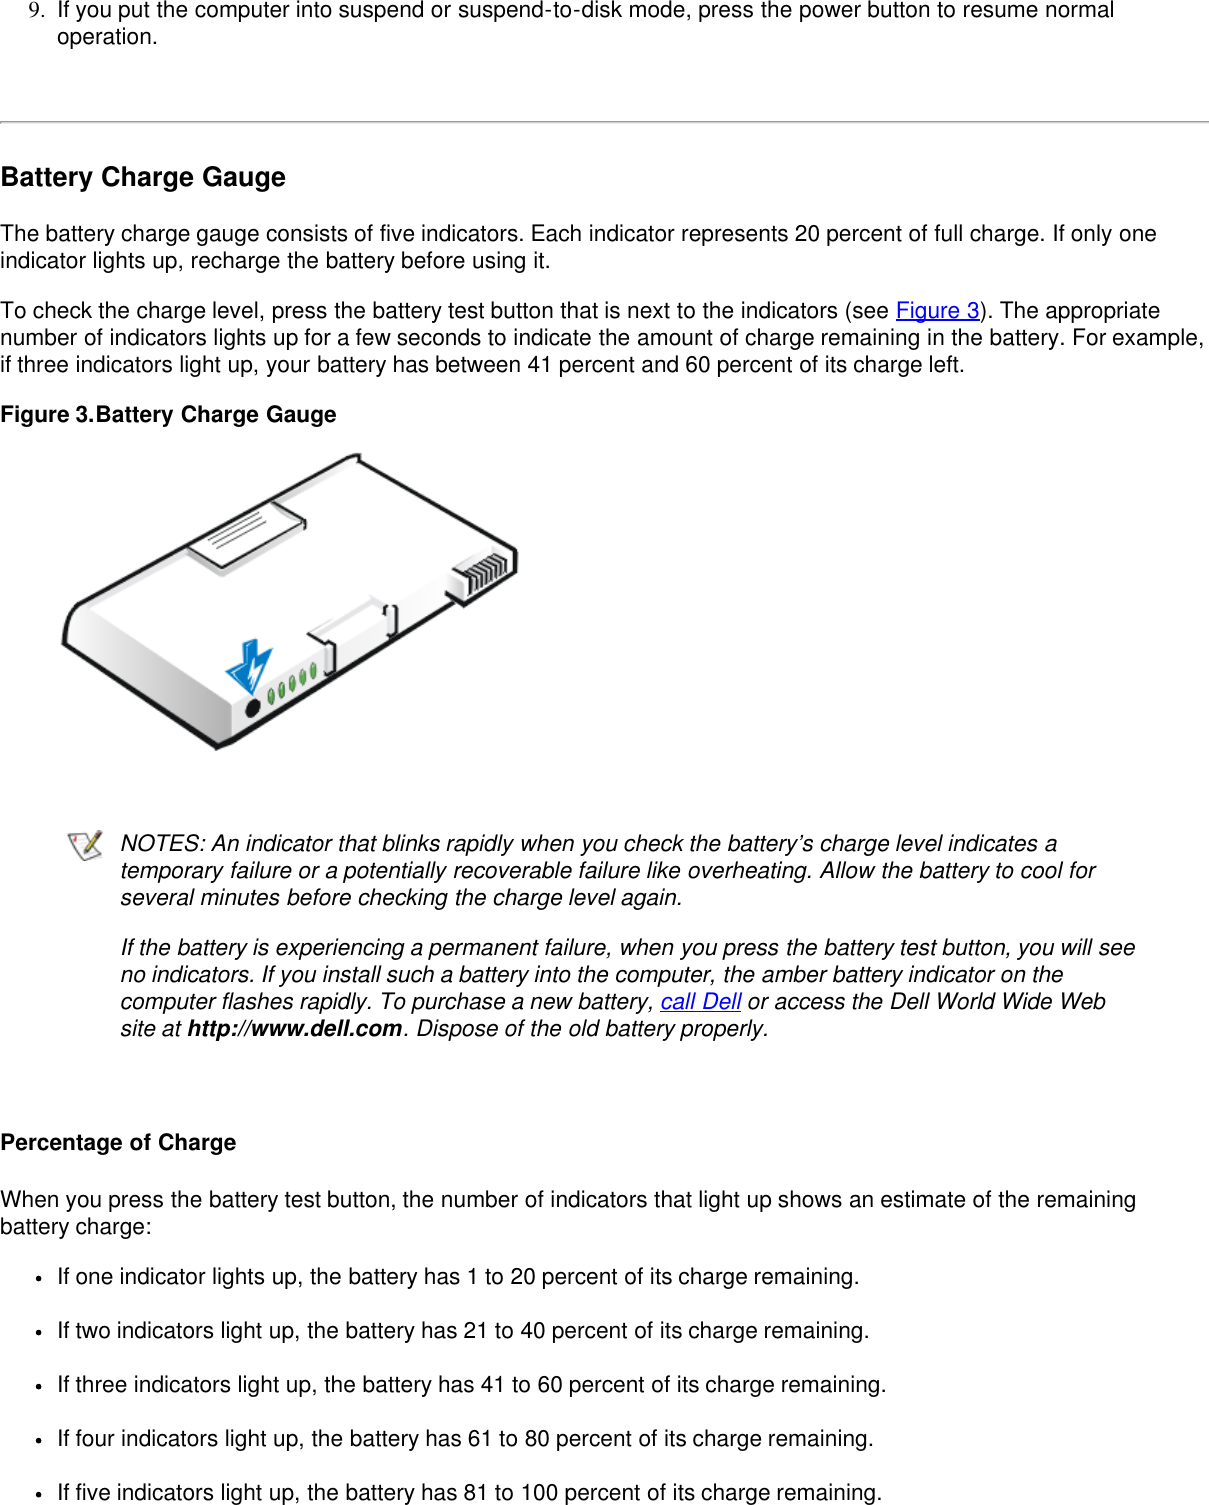 Dell Latitude Cpx H Users Manual Series/J Series User's Guide